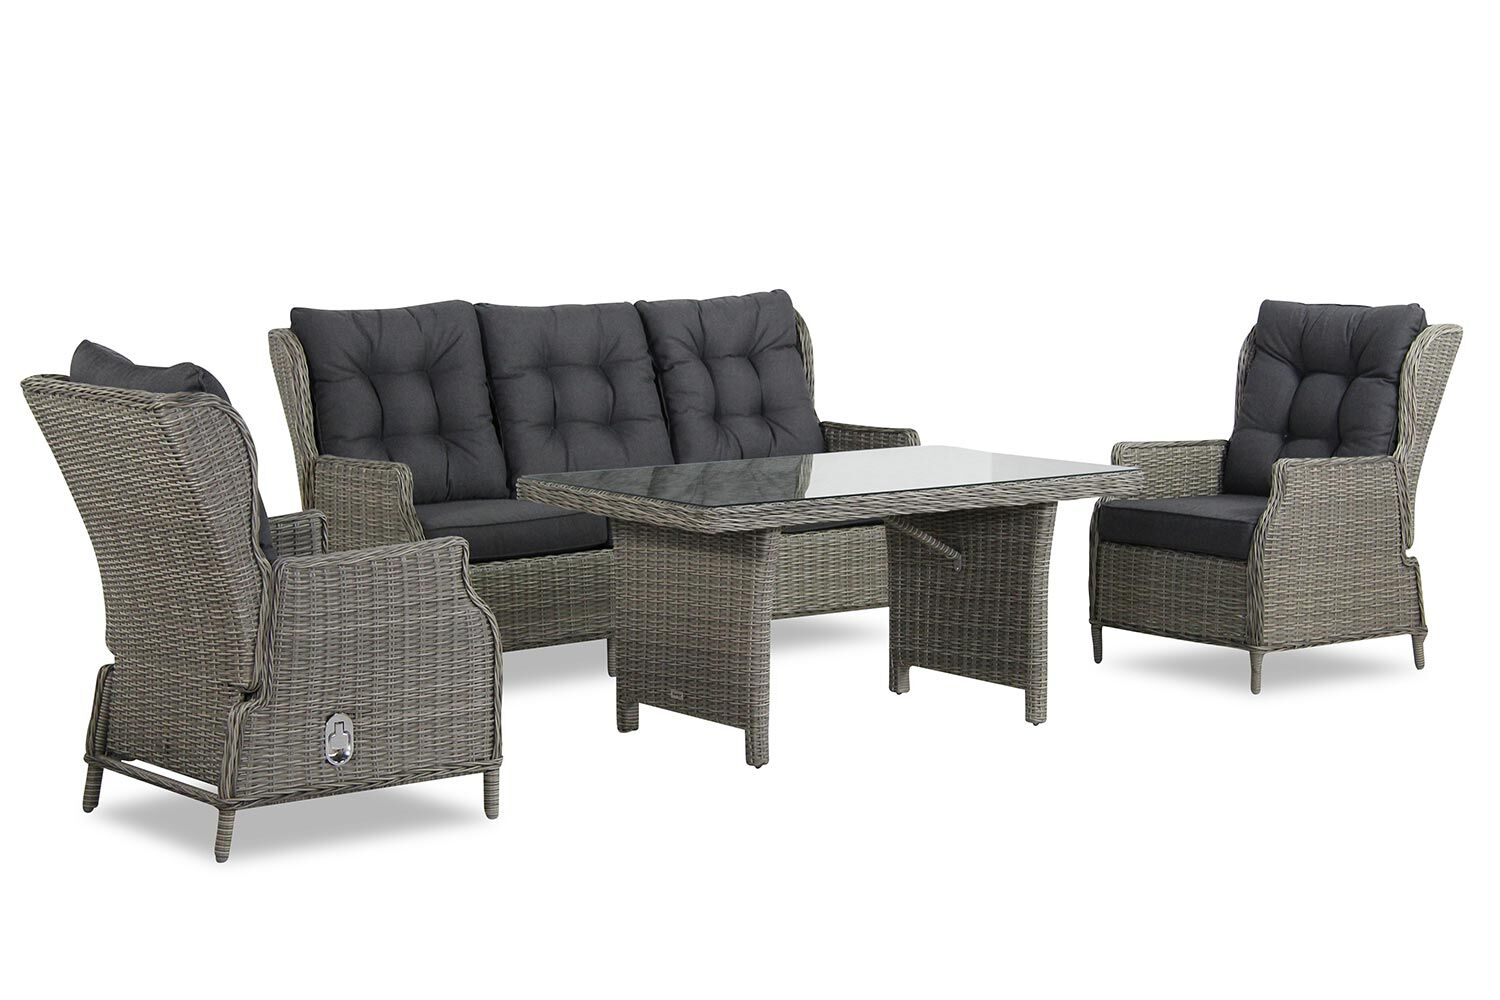 Garden Collections New Castle dining loungeset 4-delig